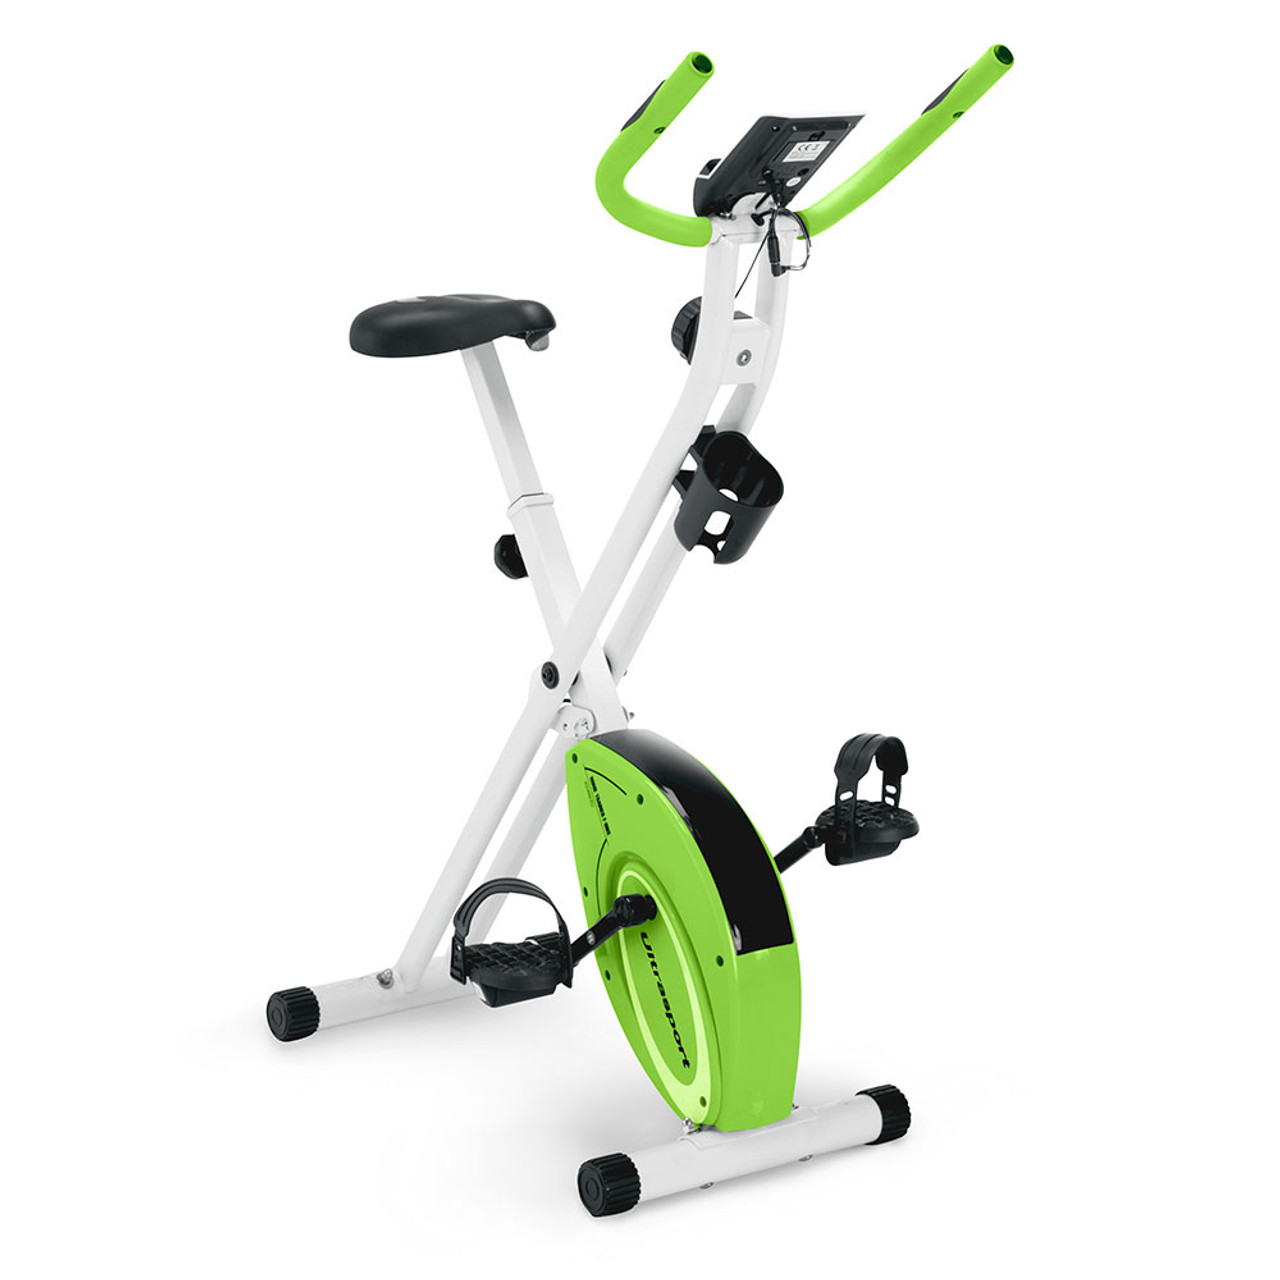 Marcy Foldable Upright Exercise Bike with Adjustable Resistance in Multiple  Colors - Marcypro.com